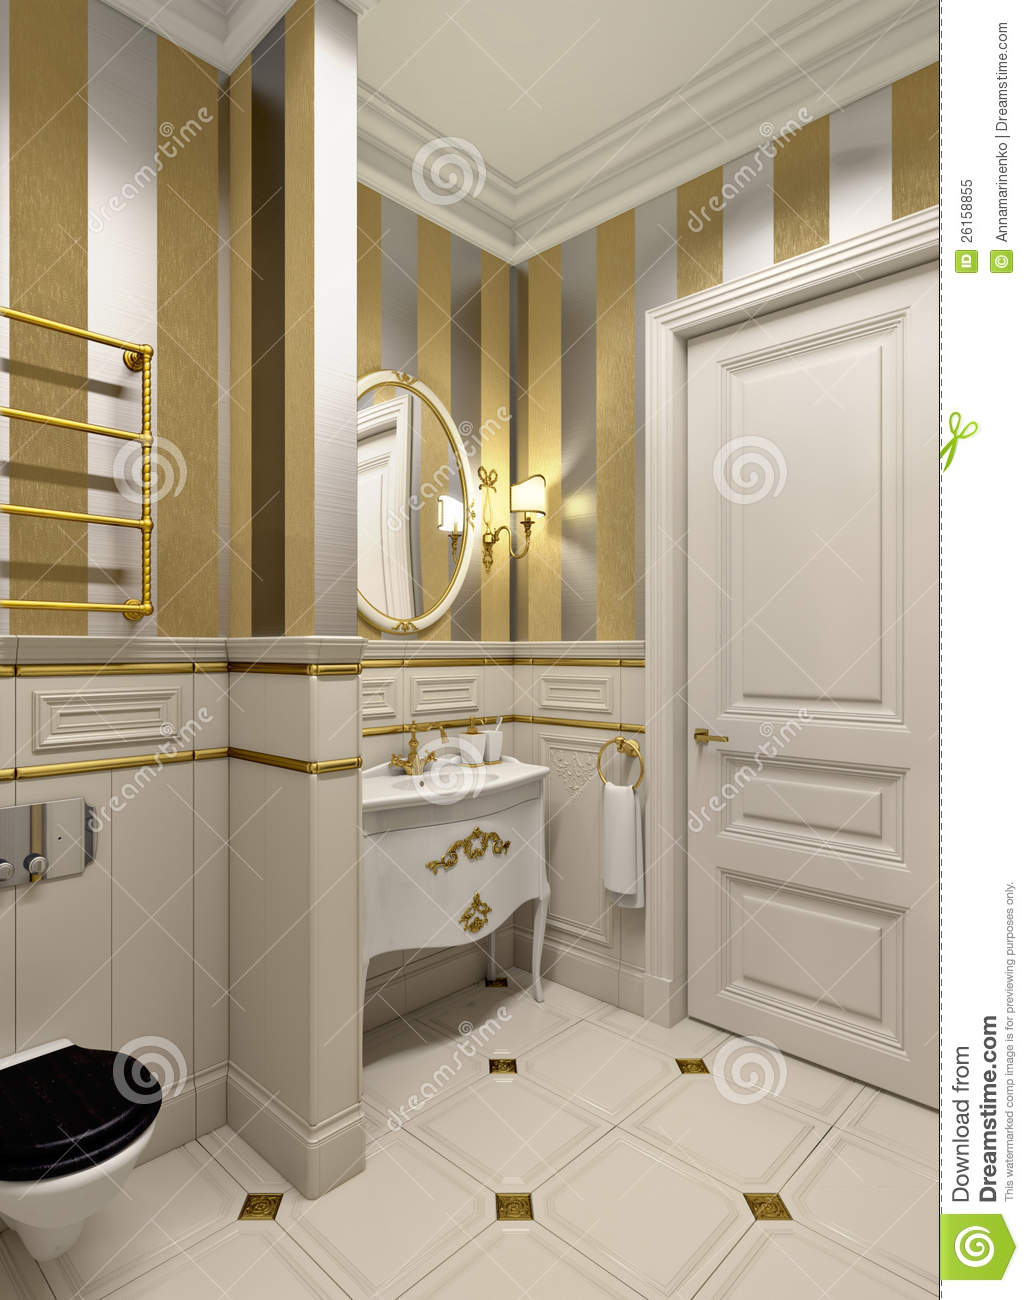 Gold Bathroom Royalty Free Stock Photo Image 26158855